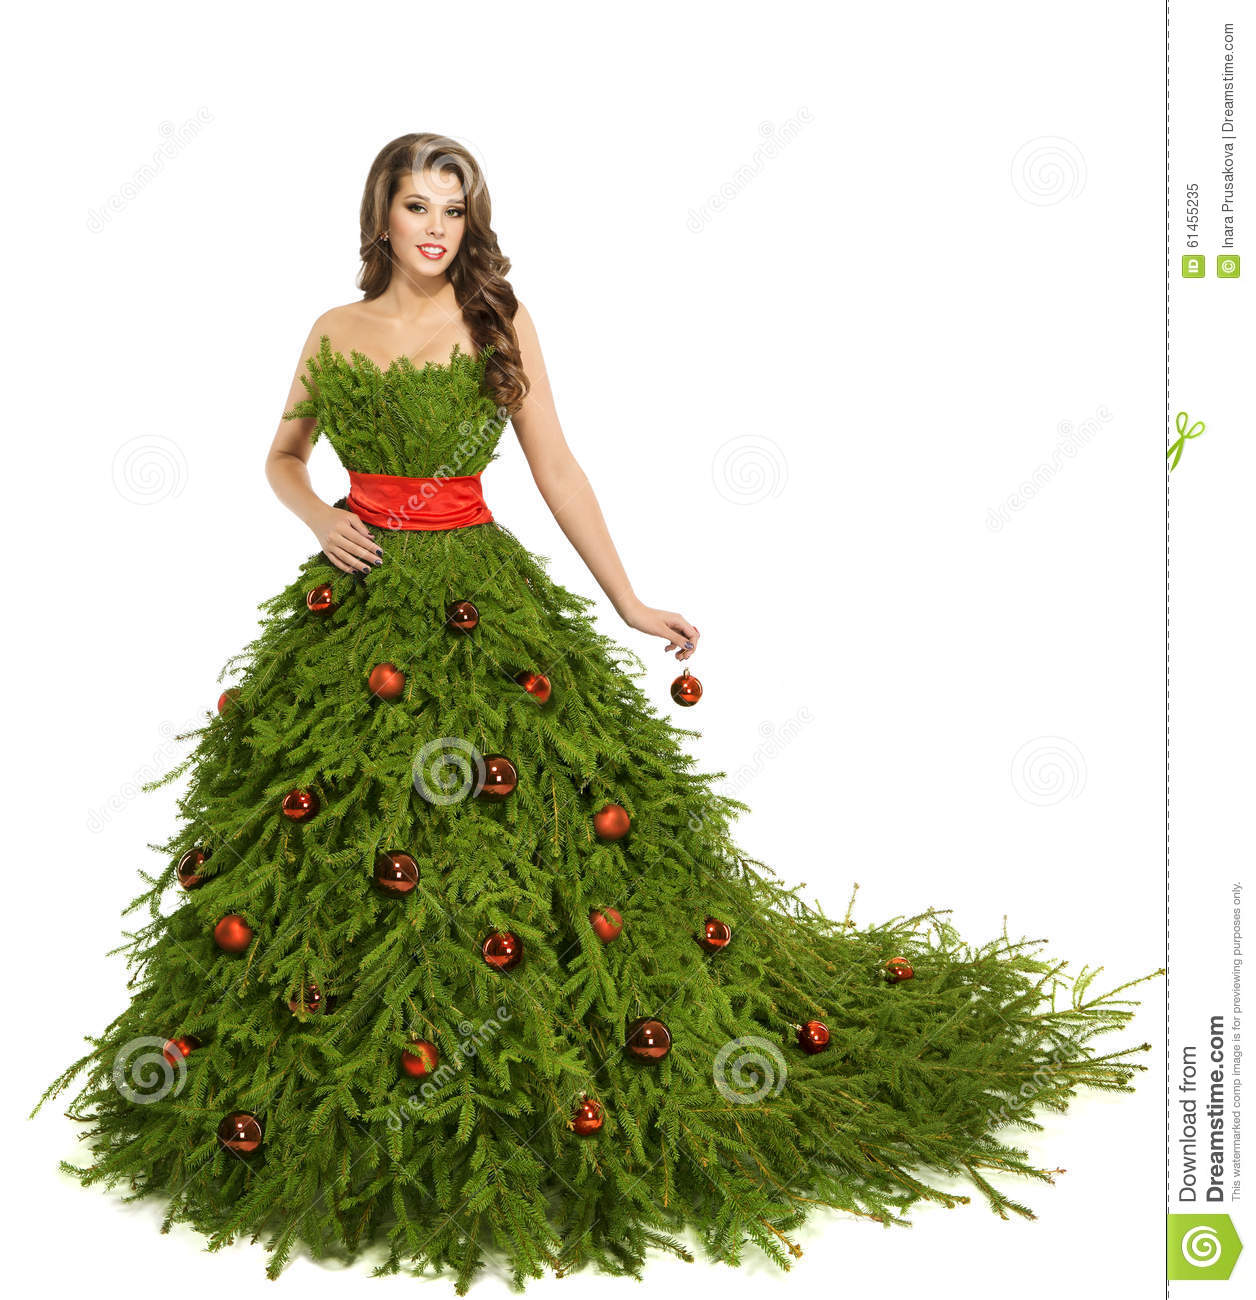 christmas tree woman dress fashion model on white xmas. Black Bedroom Furniture Sets. Home Design Ideas